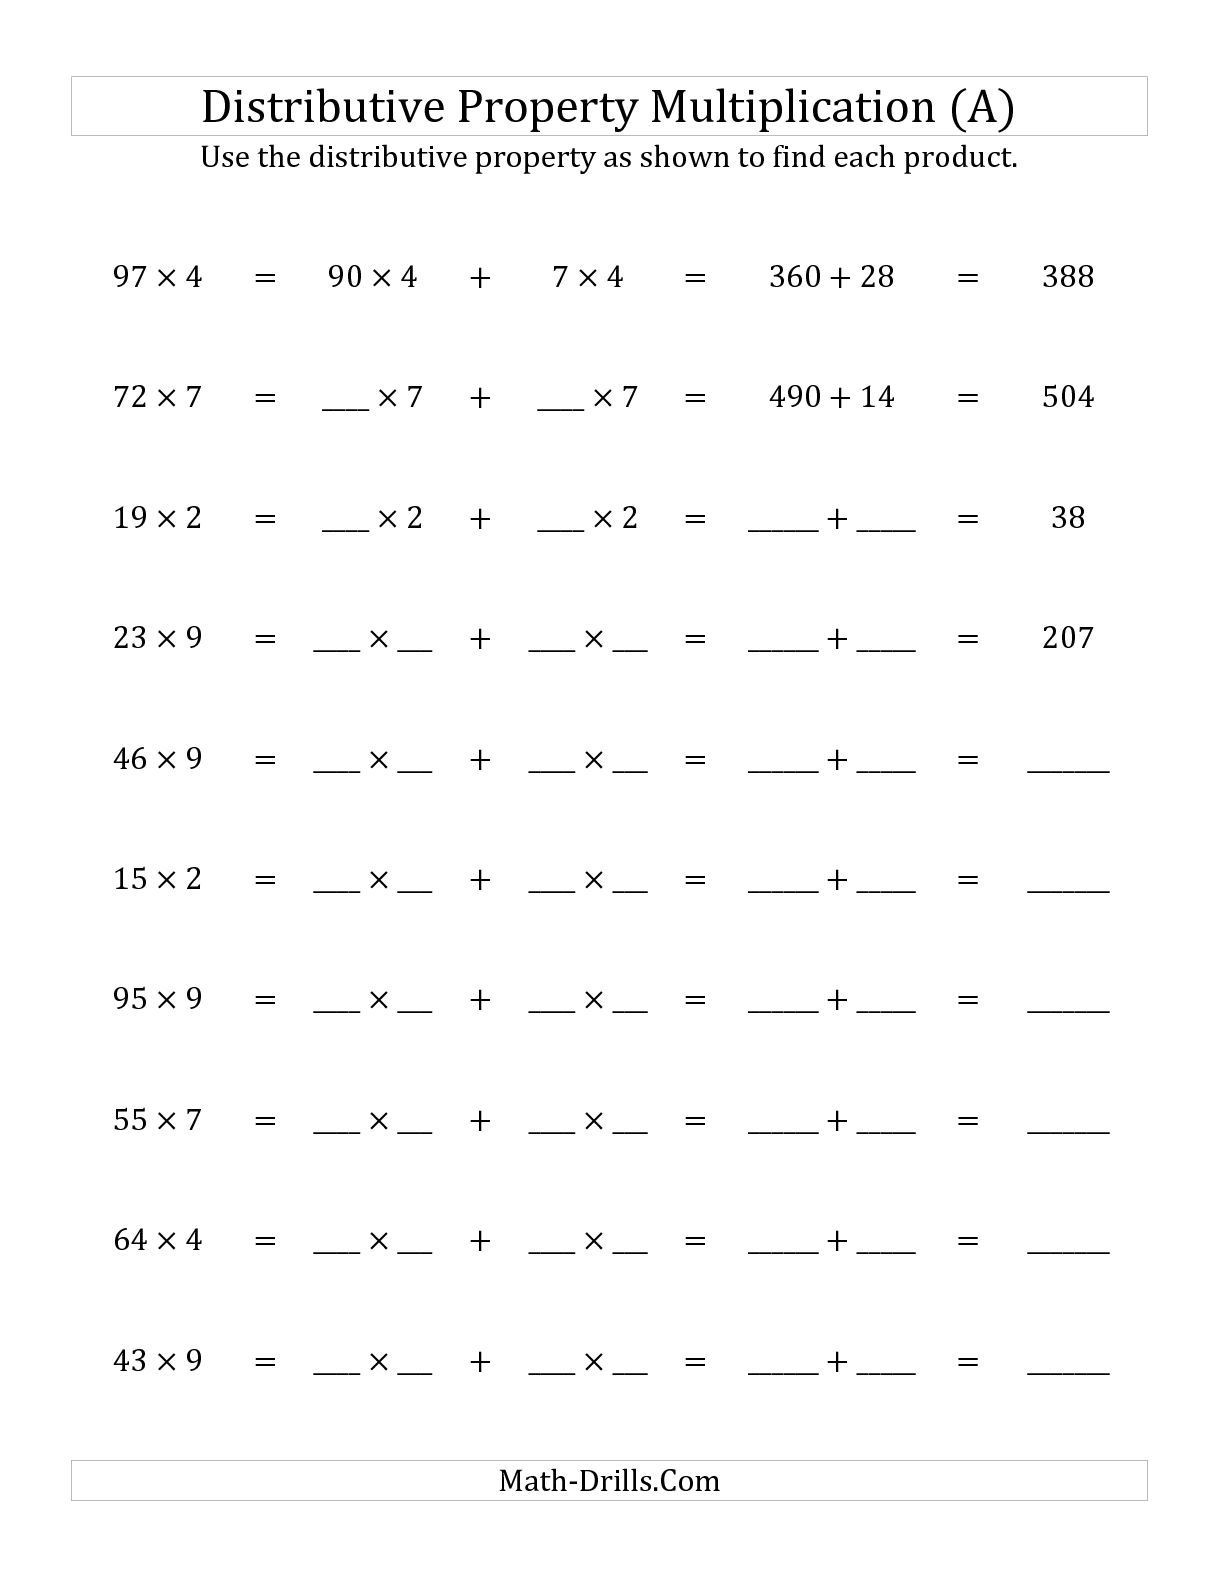 Distributive Property Worksheets 9th Grade the Multiply 2 Digit by 1 Digit Numbers Using the